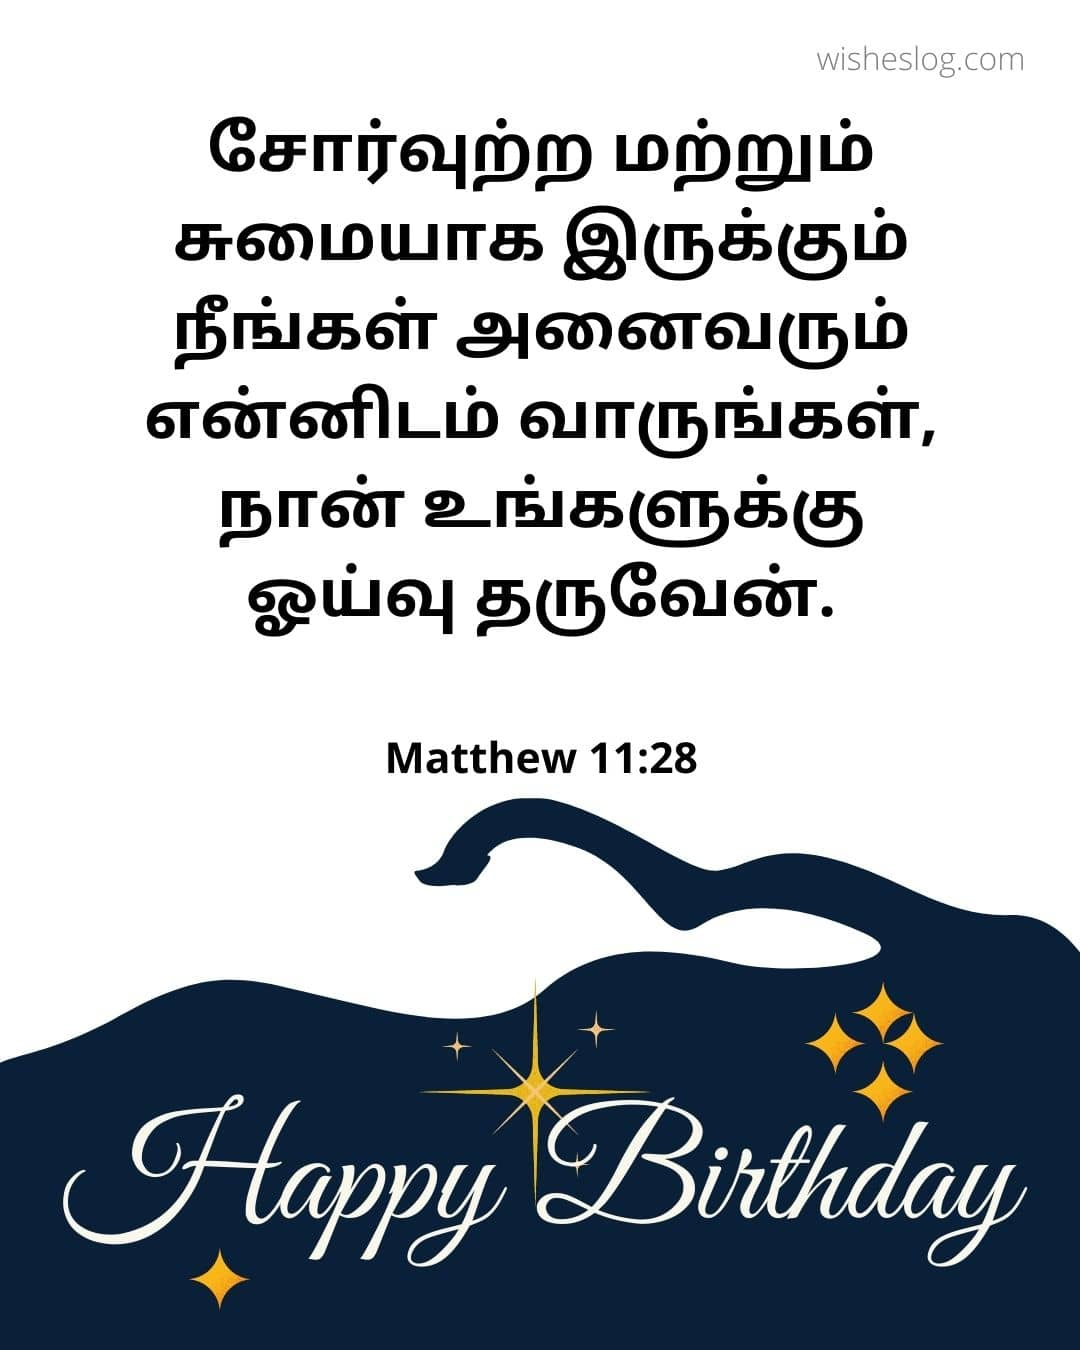 bible words for birthday wishes in tamil